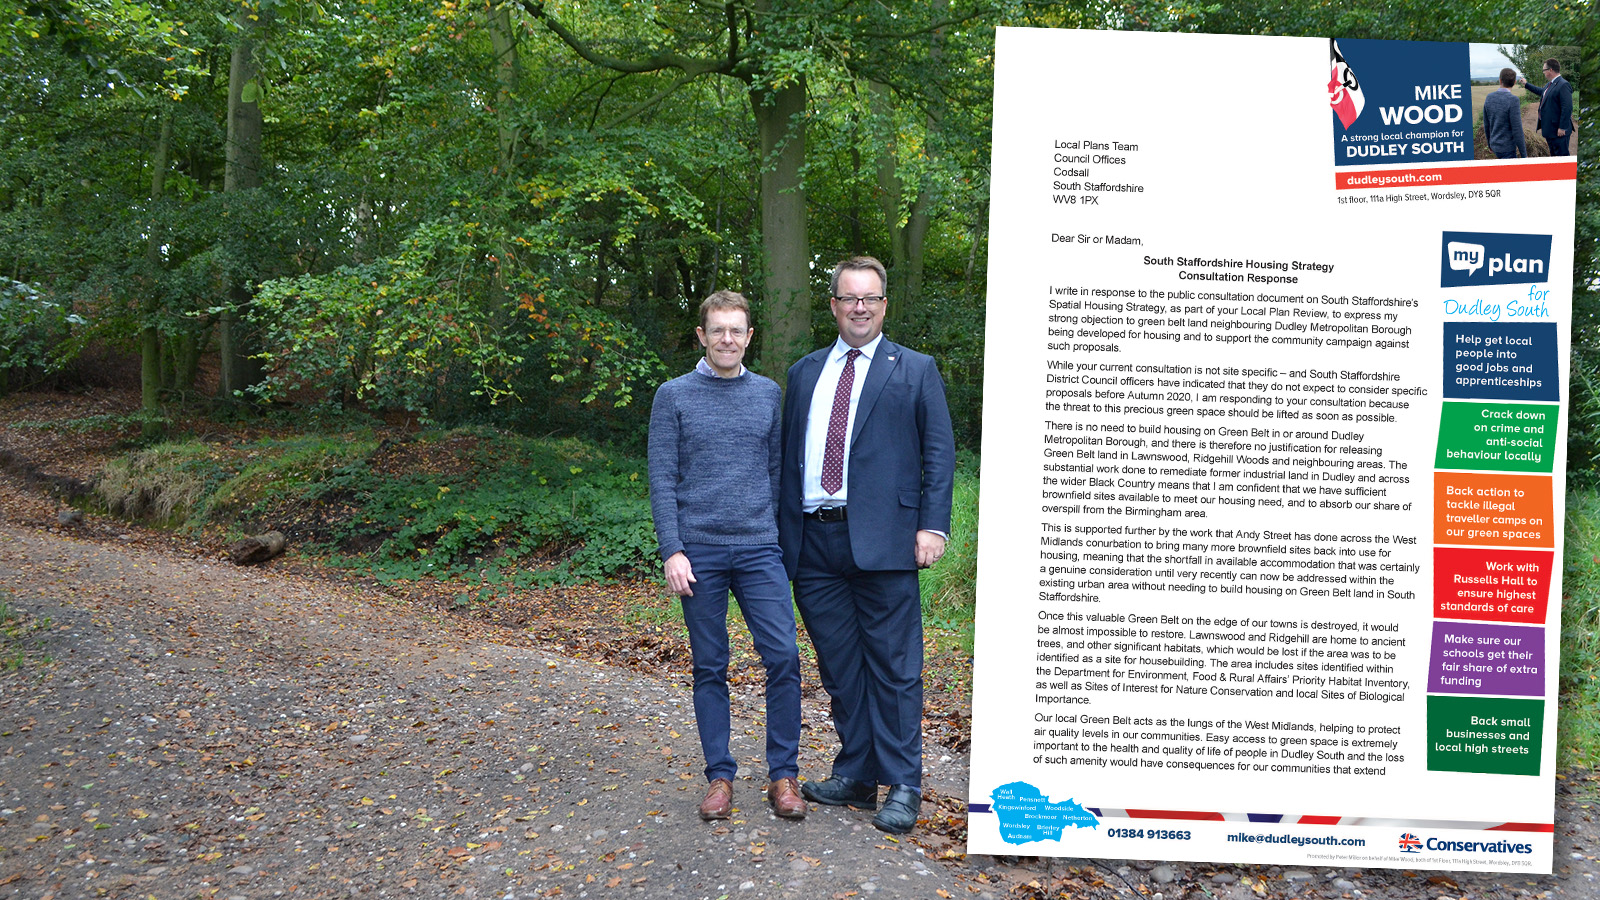 Mike has written to South Staffs Council objecting to proposals for building on Green Belt at Lawnswood and Ridgehill Woods